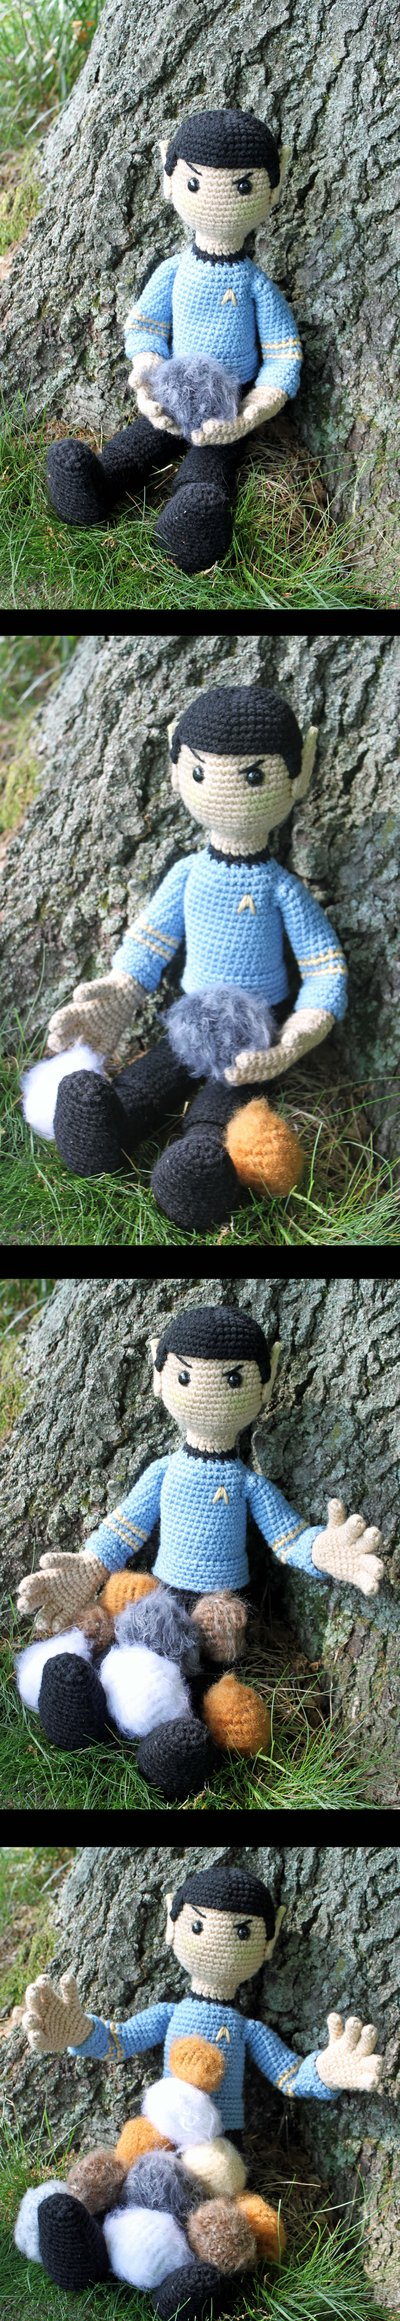 the_trouble_with_tribbles_by_bandotaku-d691duq